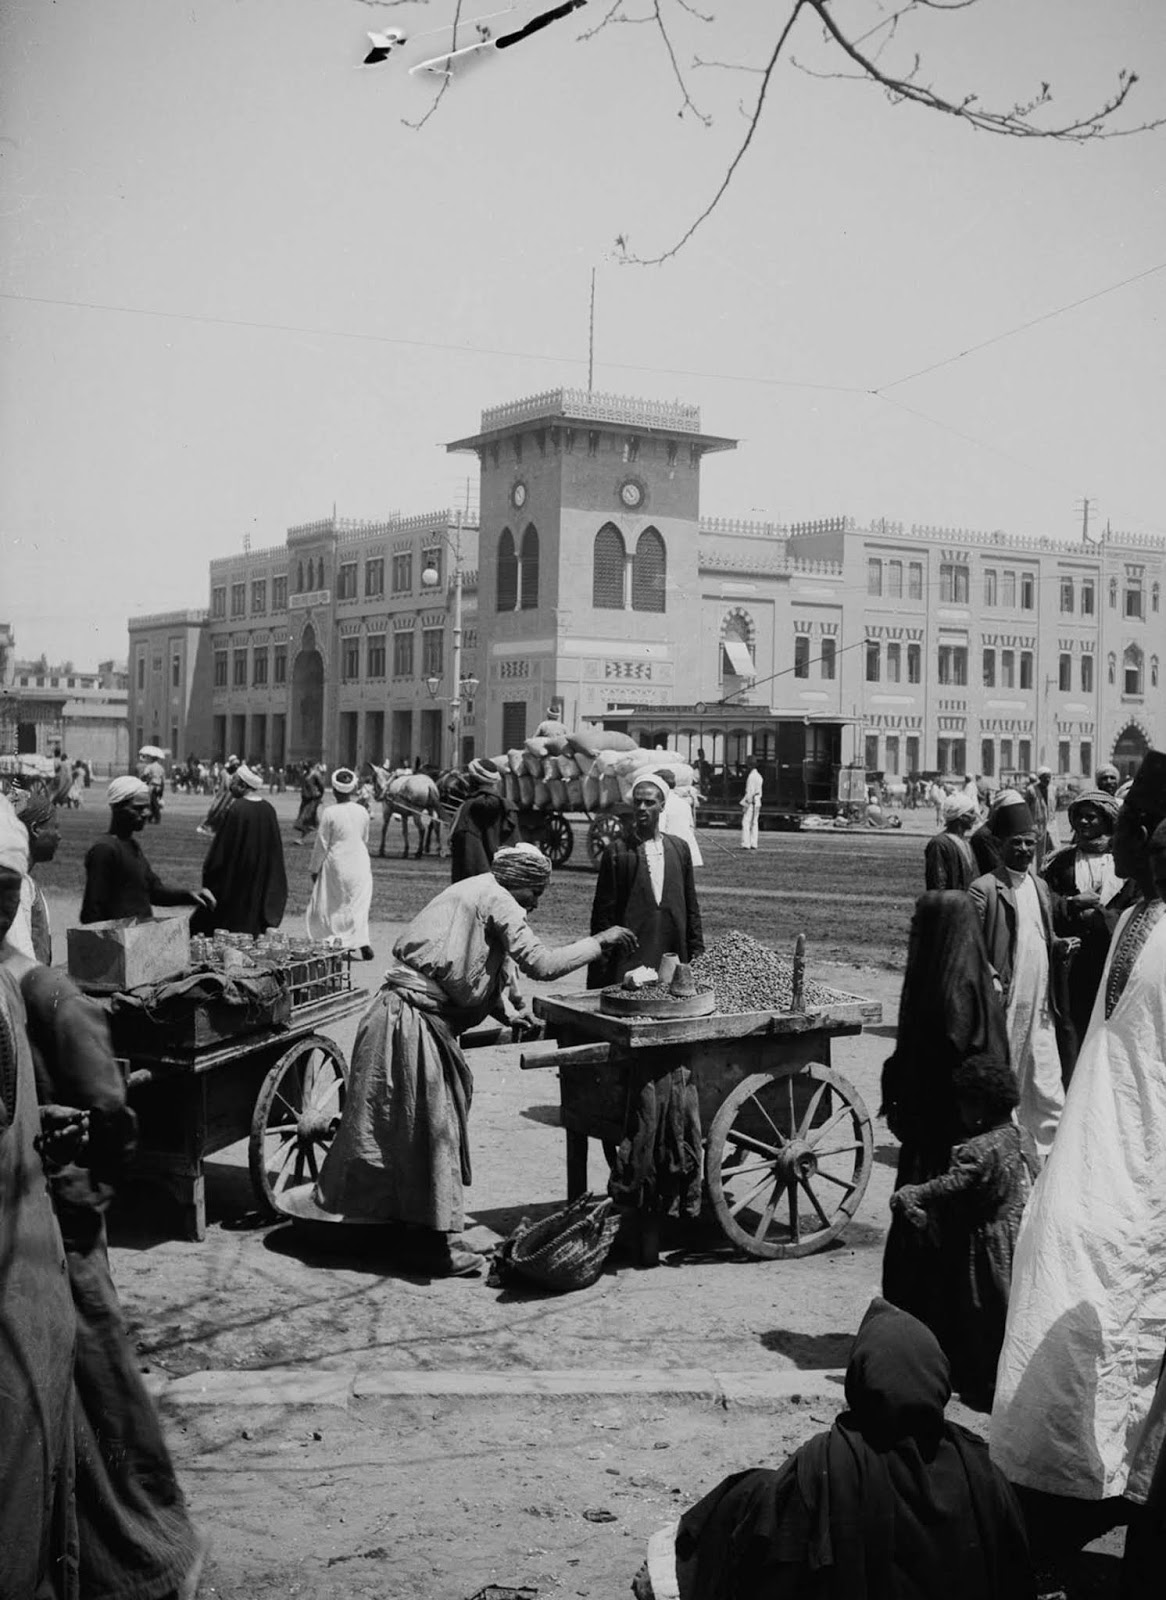 Outside the Cairo railway station. 1900.